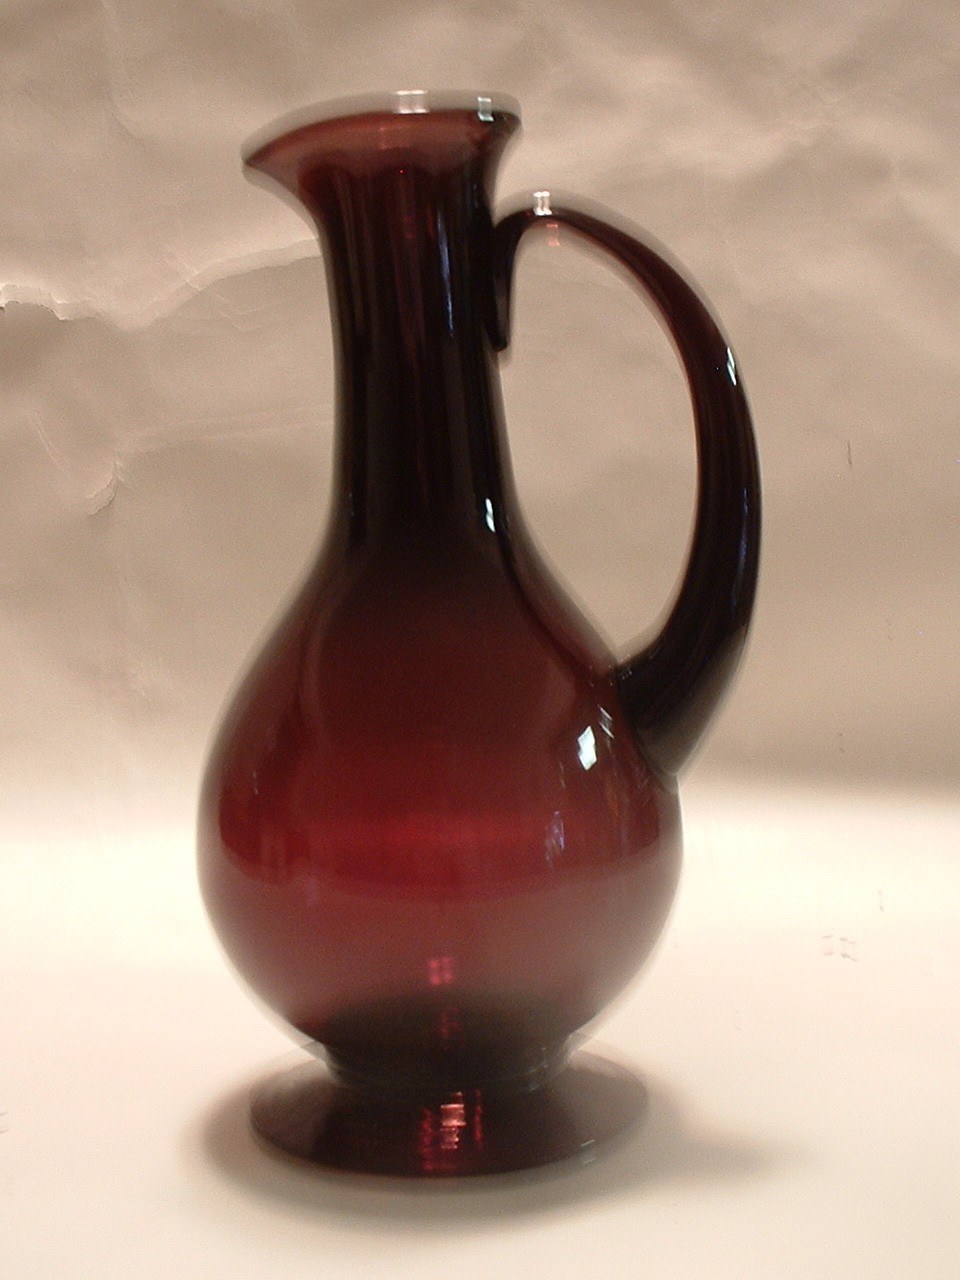 Vintage Art Glass Handmade Studio Vase / Pitcher / Ewer